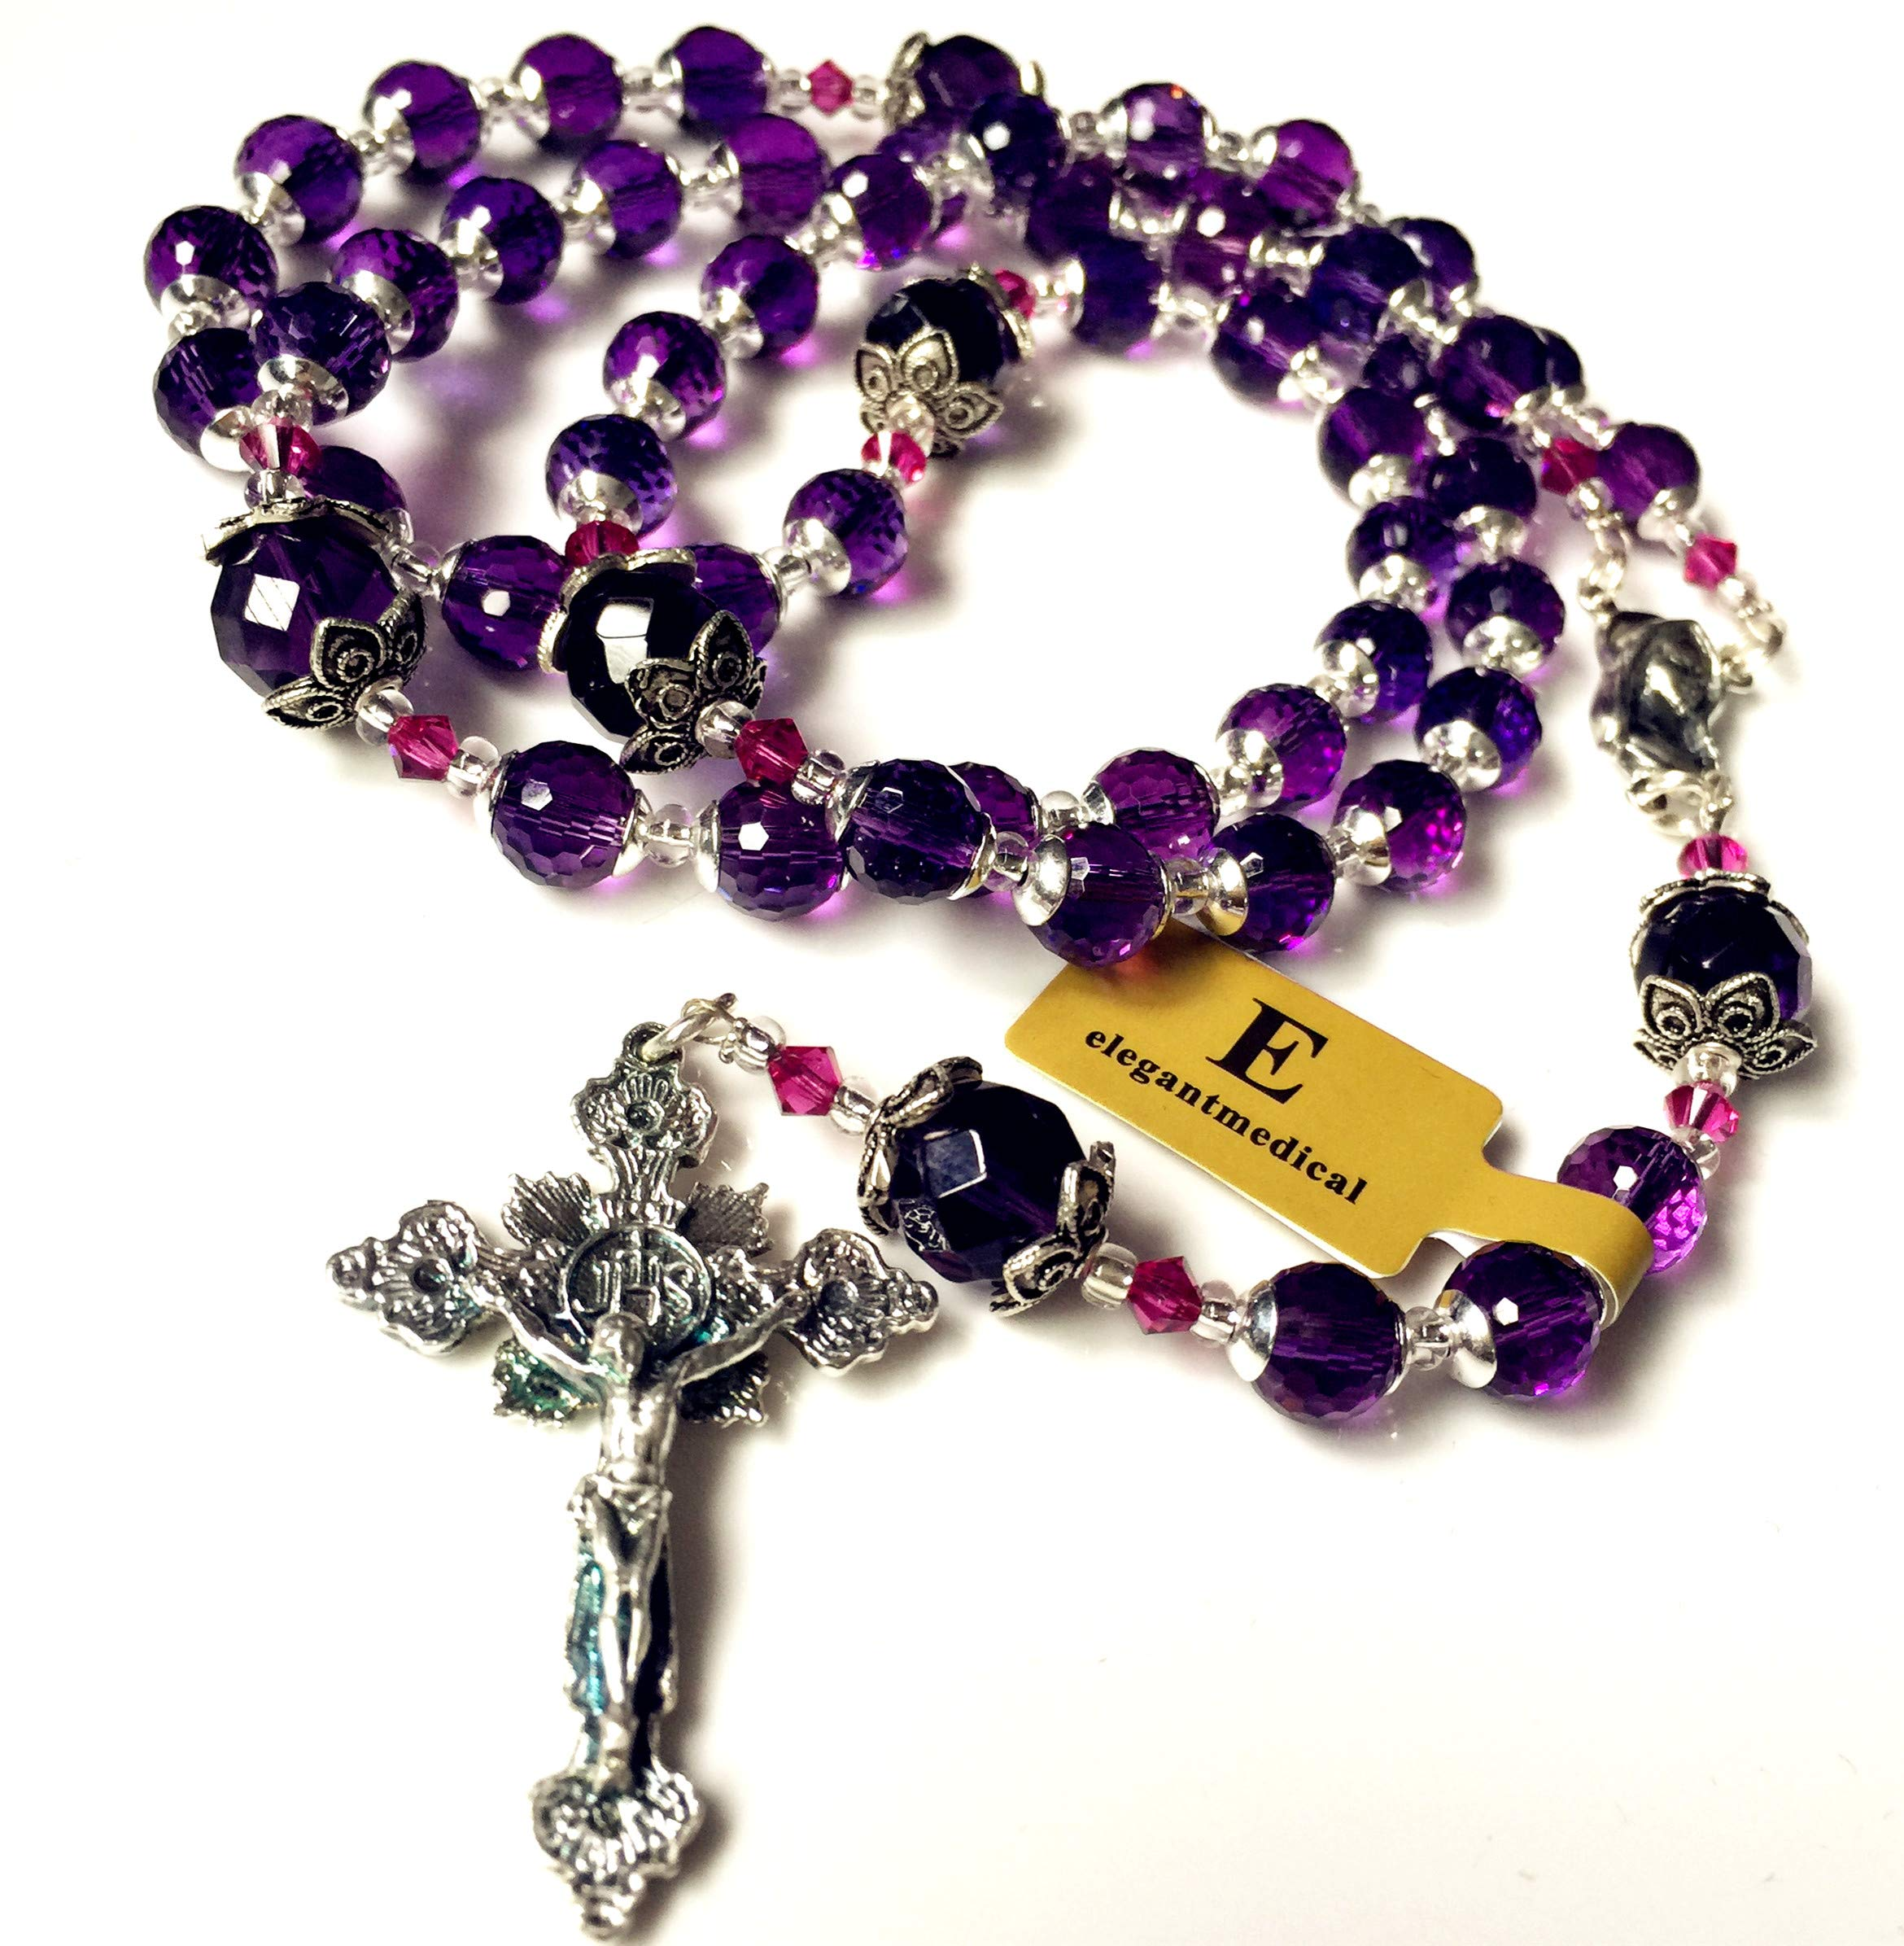 elegantmedical Handmade 925 Sterling Silver Purple Amethyst Beads Catholic Necklace Rosary Cross & Gift Box